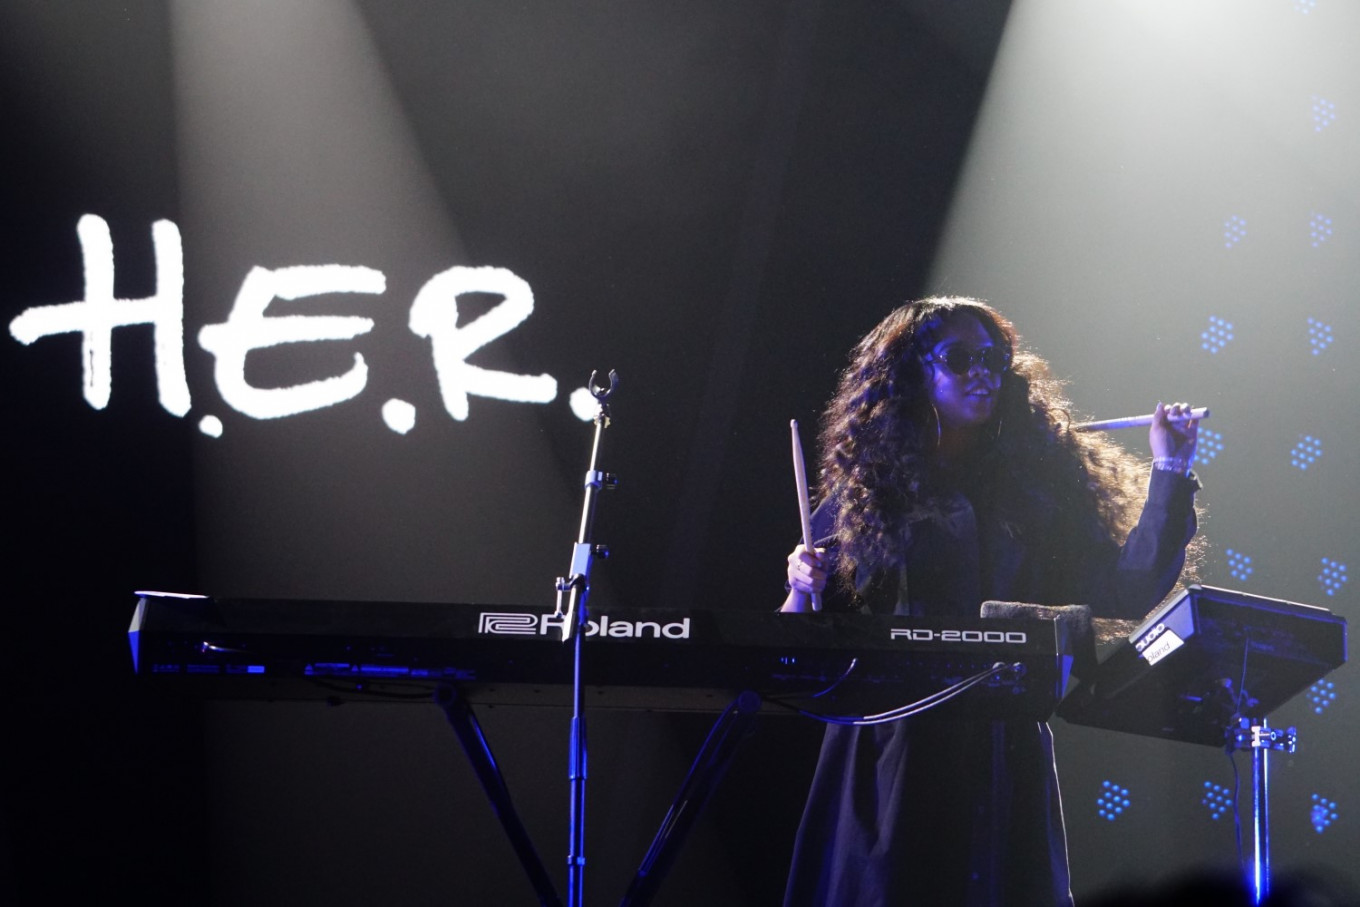 H.E.R. performs at the Jakarta International BNI Java Jazz Festival at JIExpo Kemayoran in North Jakarta on March 1, 2019.